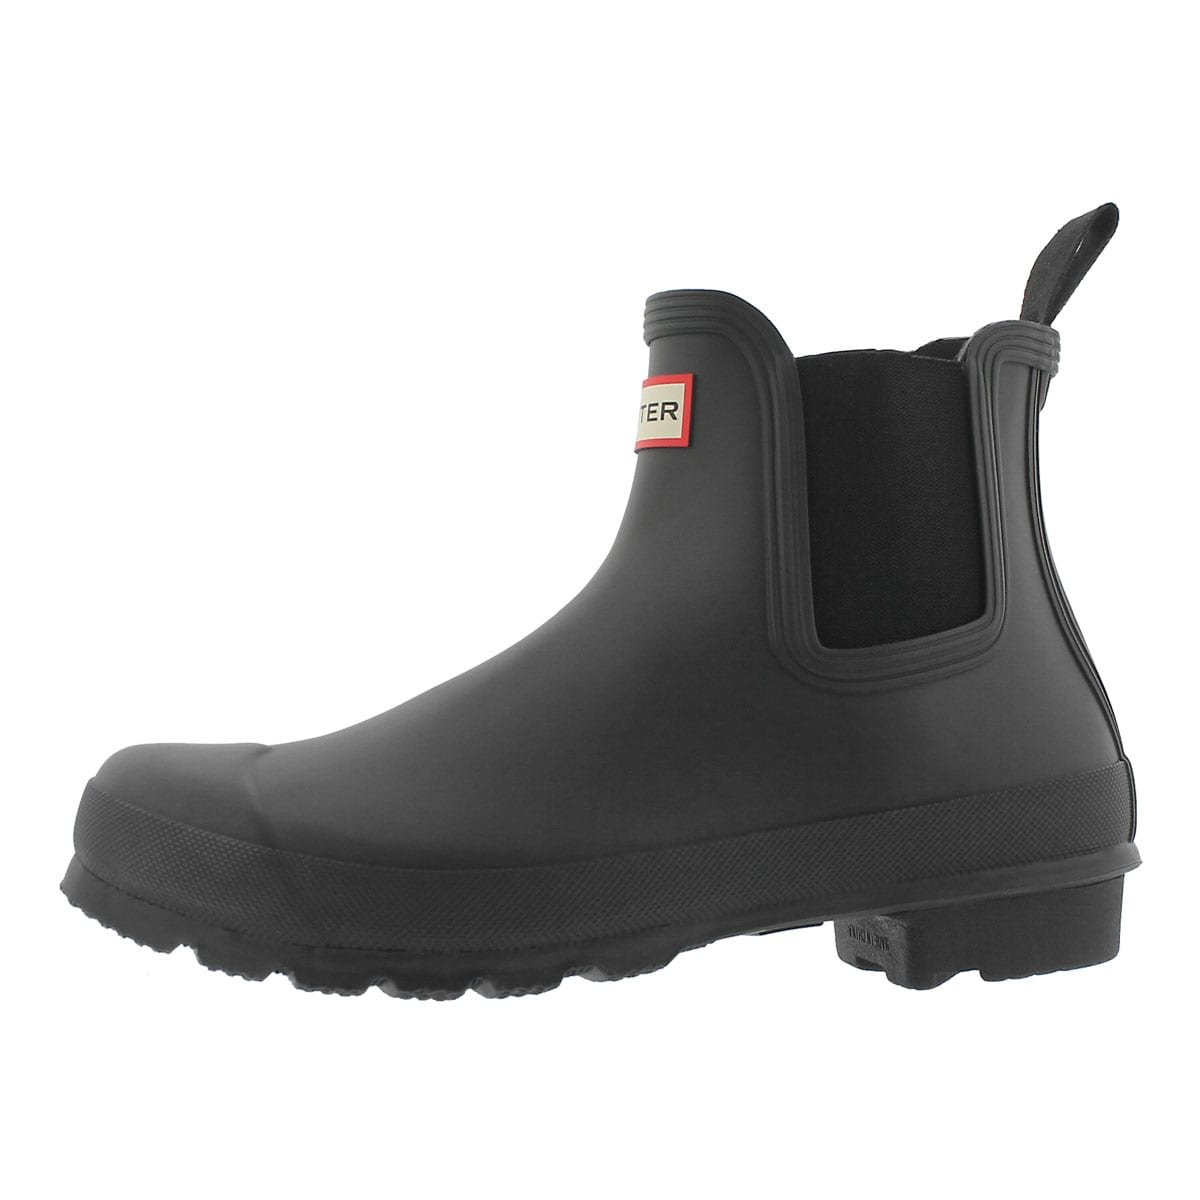 Hunter Boots Women's Original Chelsea Rain Boot Black 9 M US